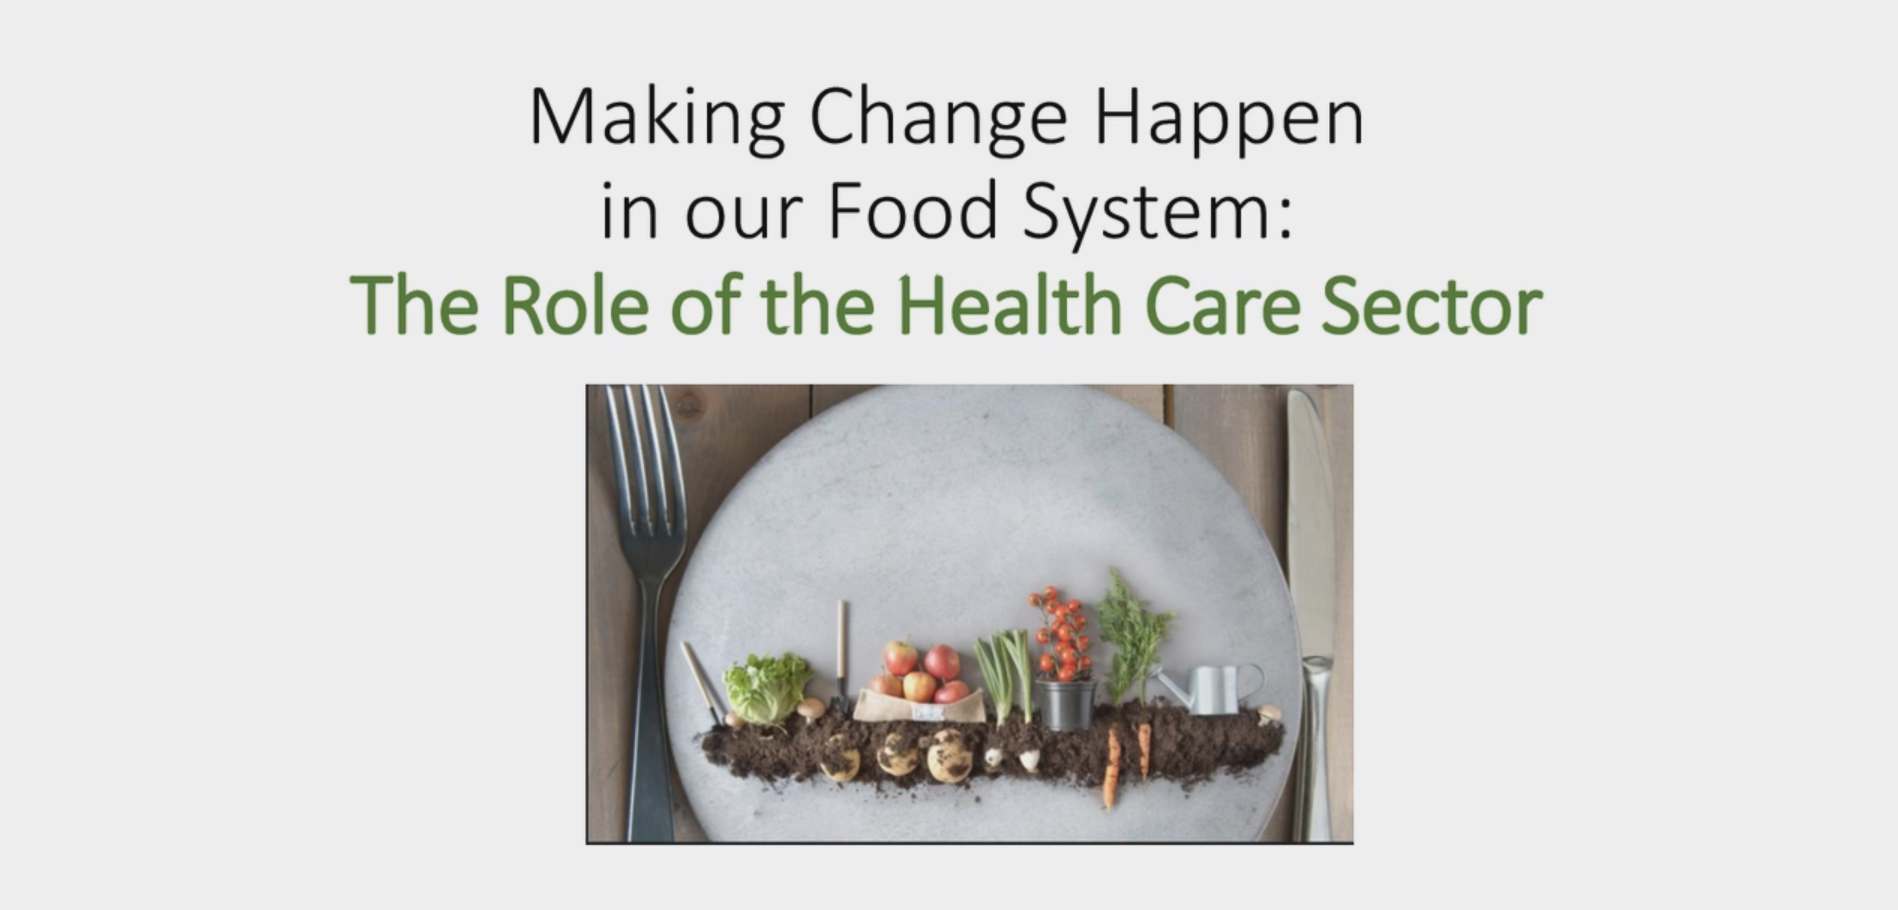 Healthier Foods in Health Care Settings